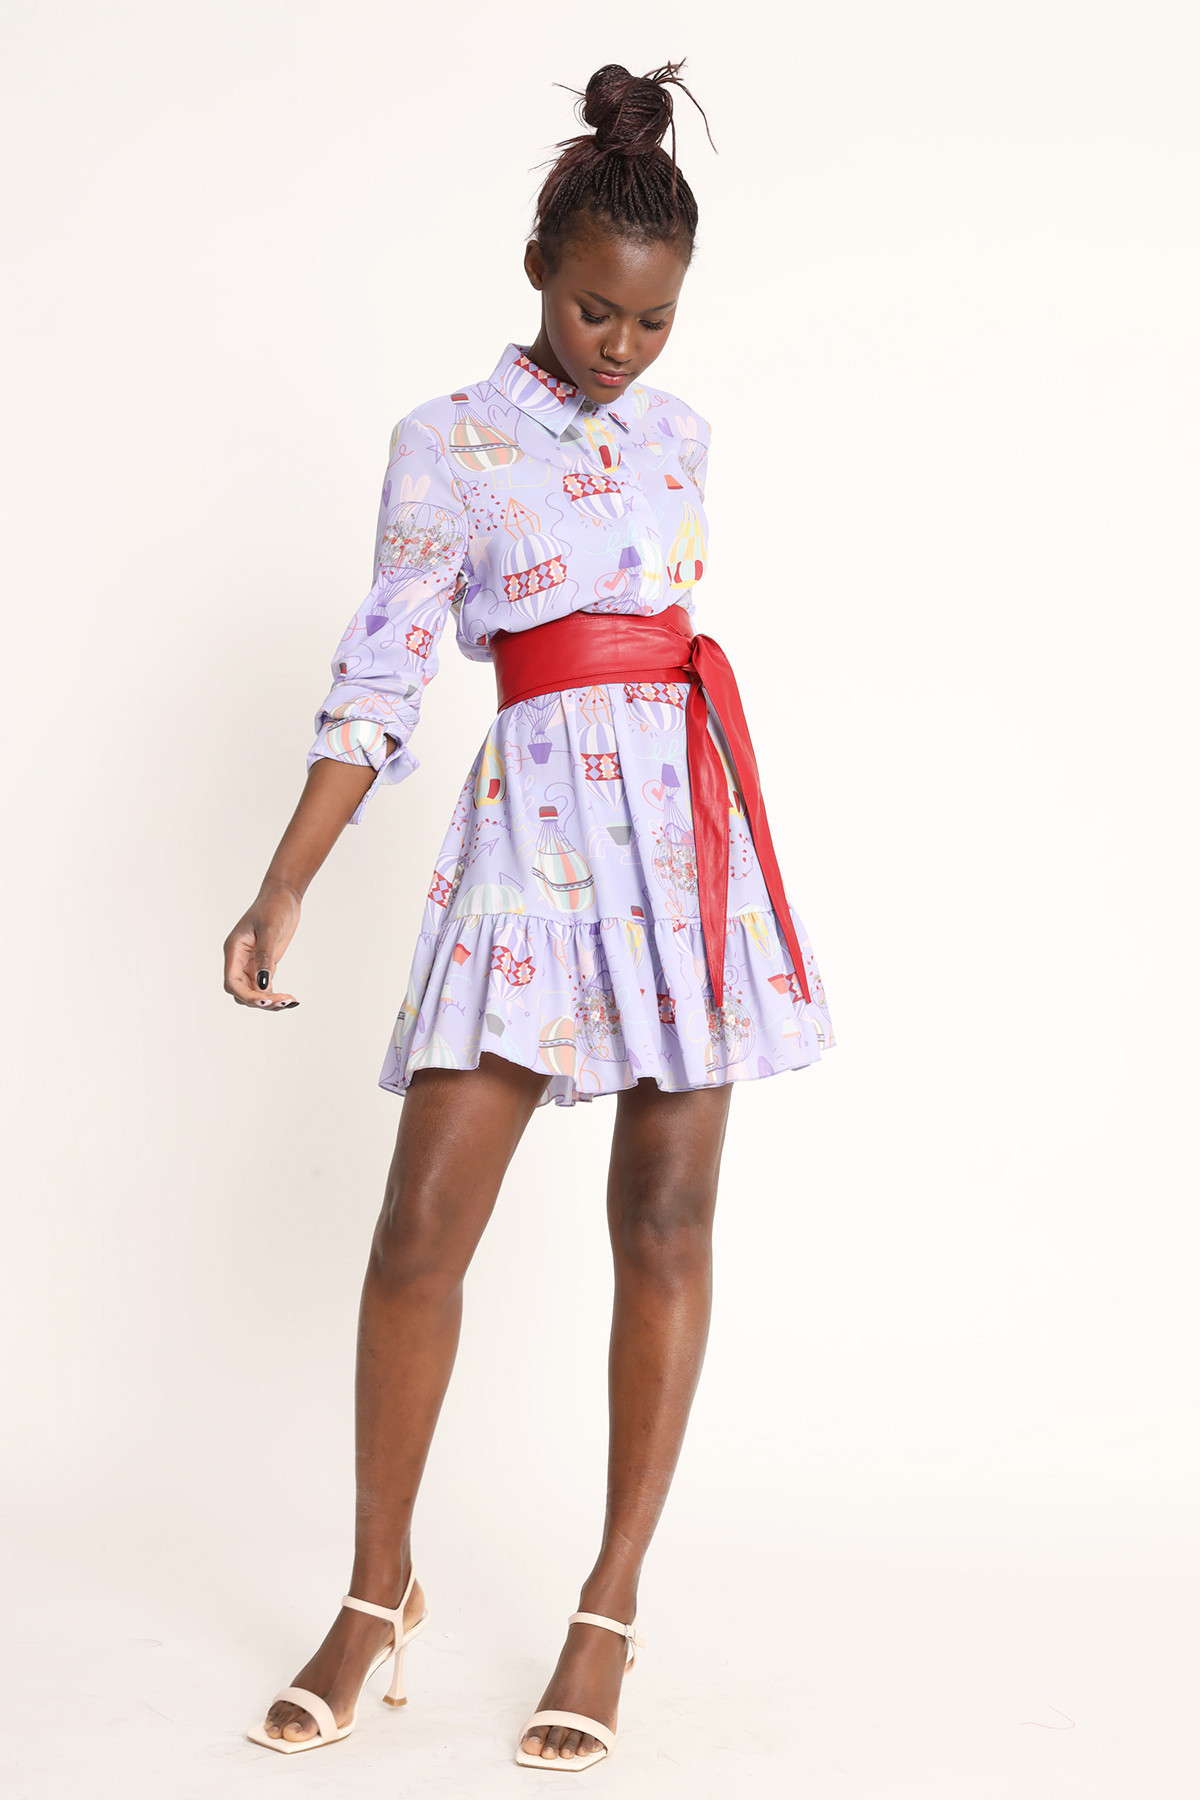 Dress With Hot Air Balloons